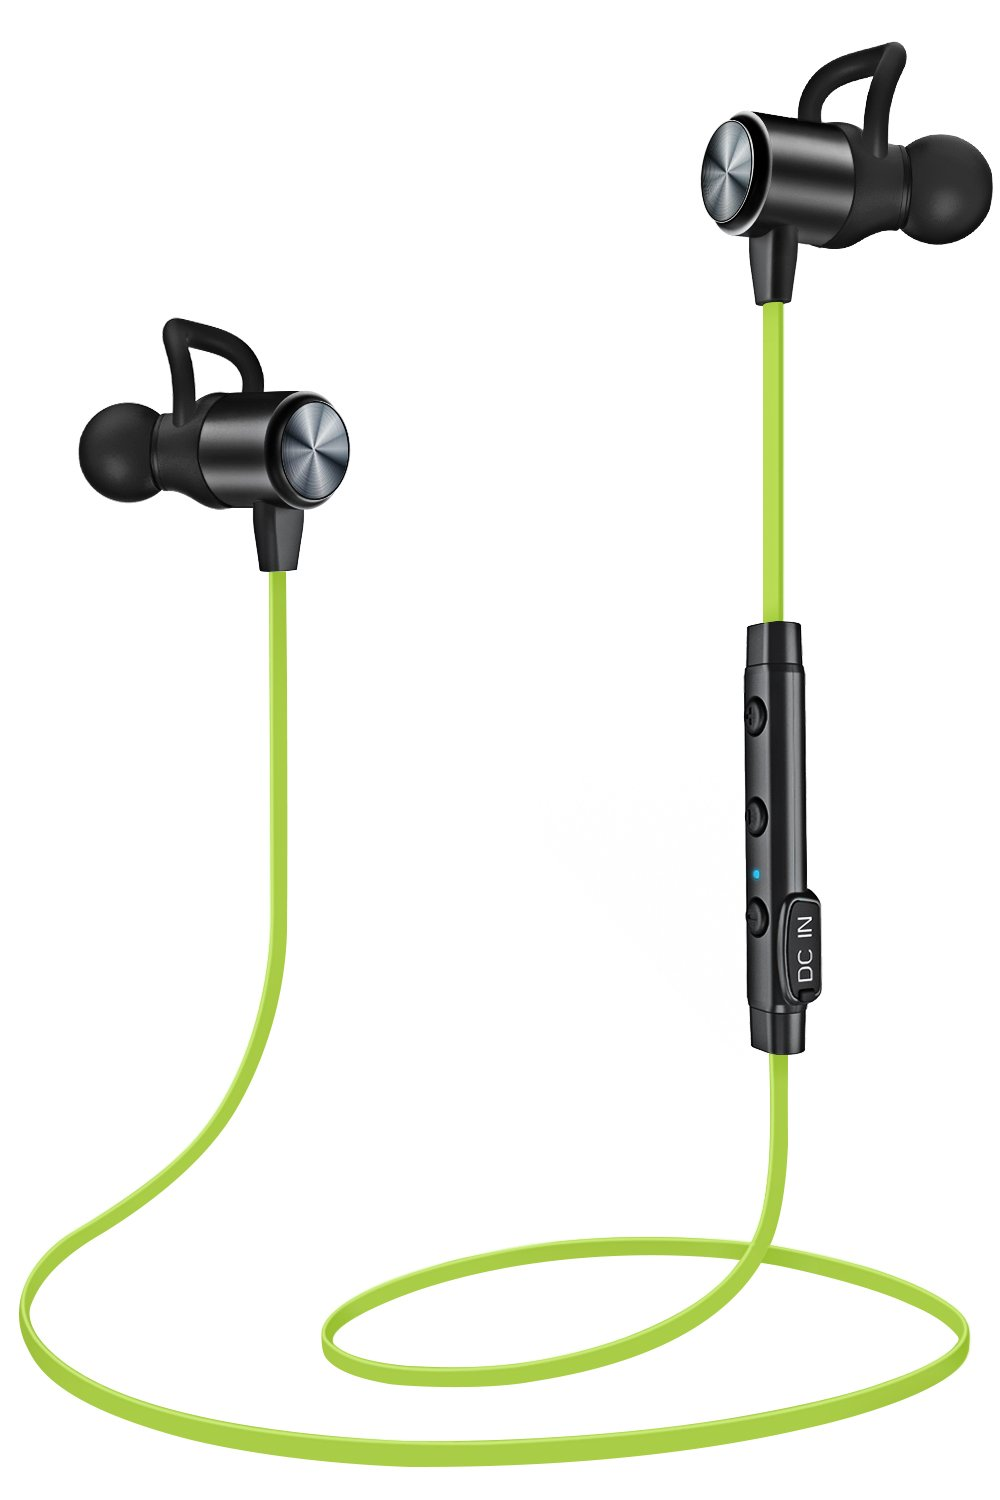 Lightweight Bluetooth Earbuds